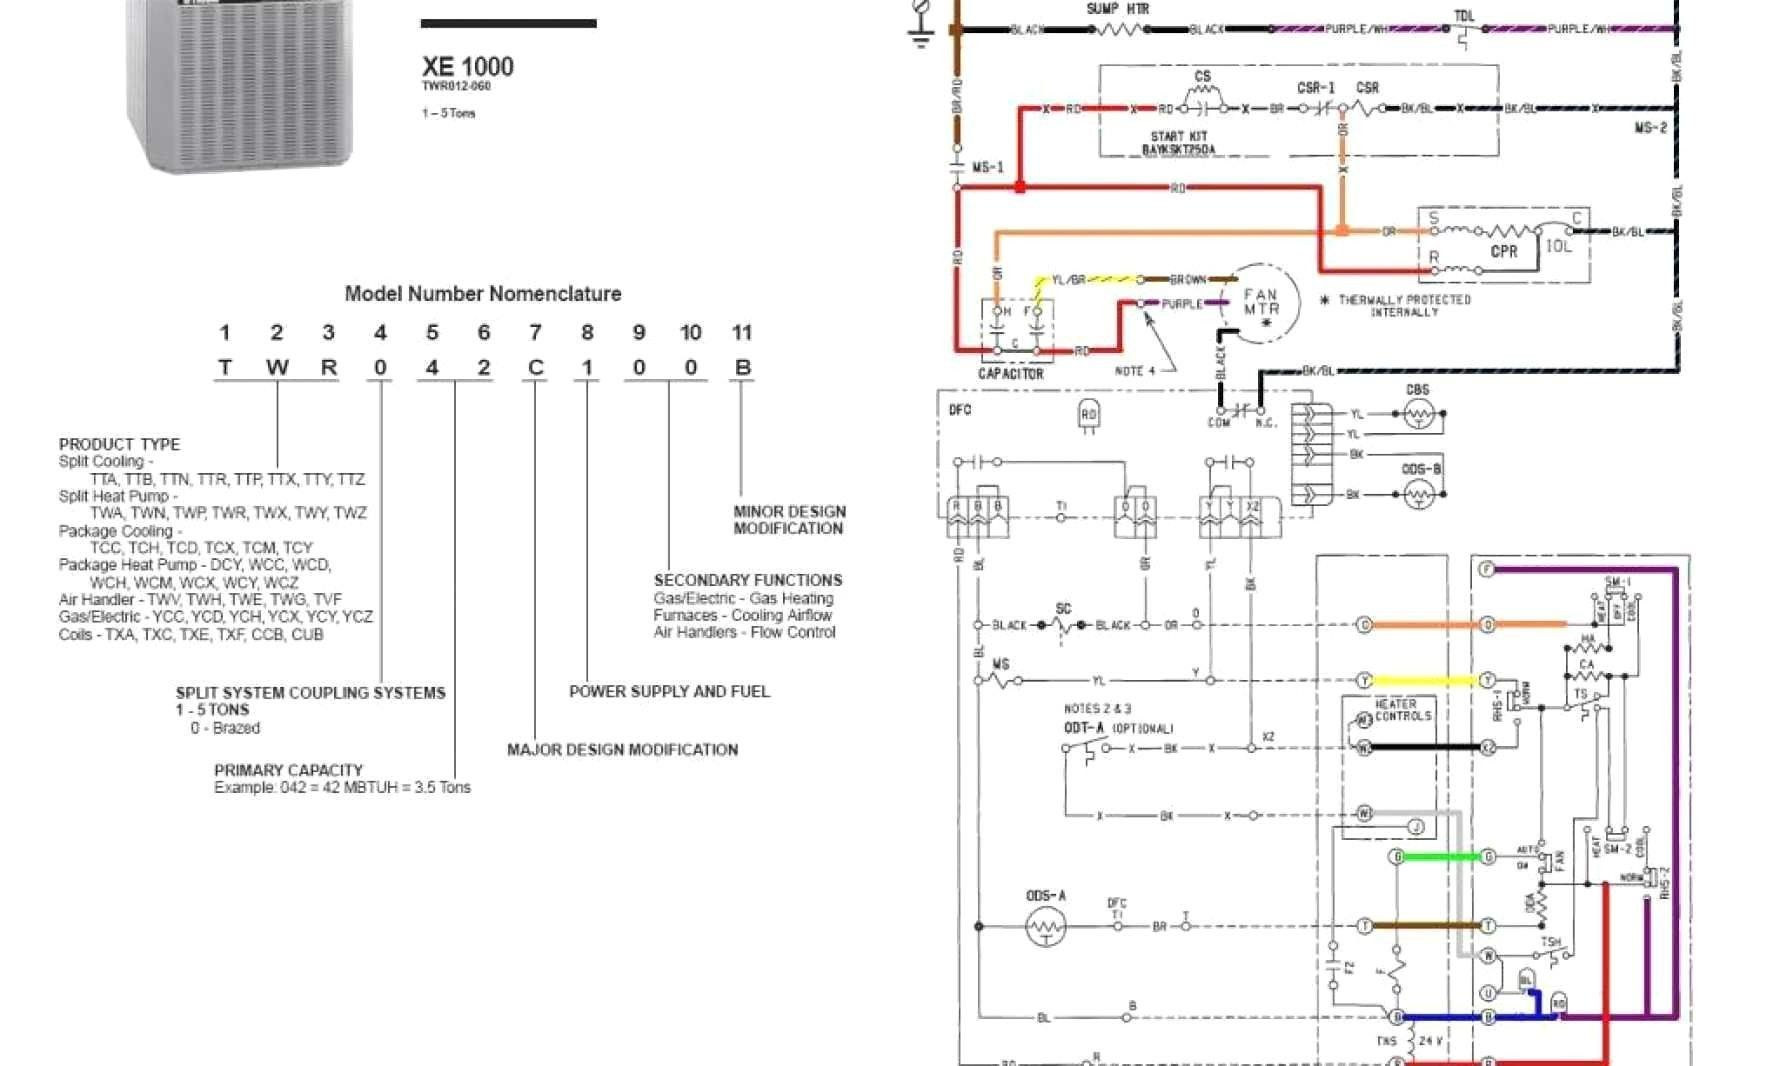 Trane Weathertron Baystat 239 Thermostat Wiring Diagram from static-resources.imageservice.cloud